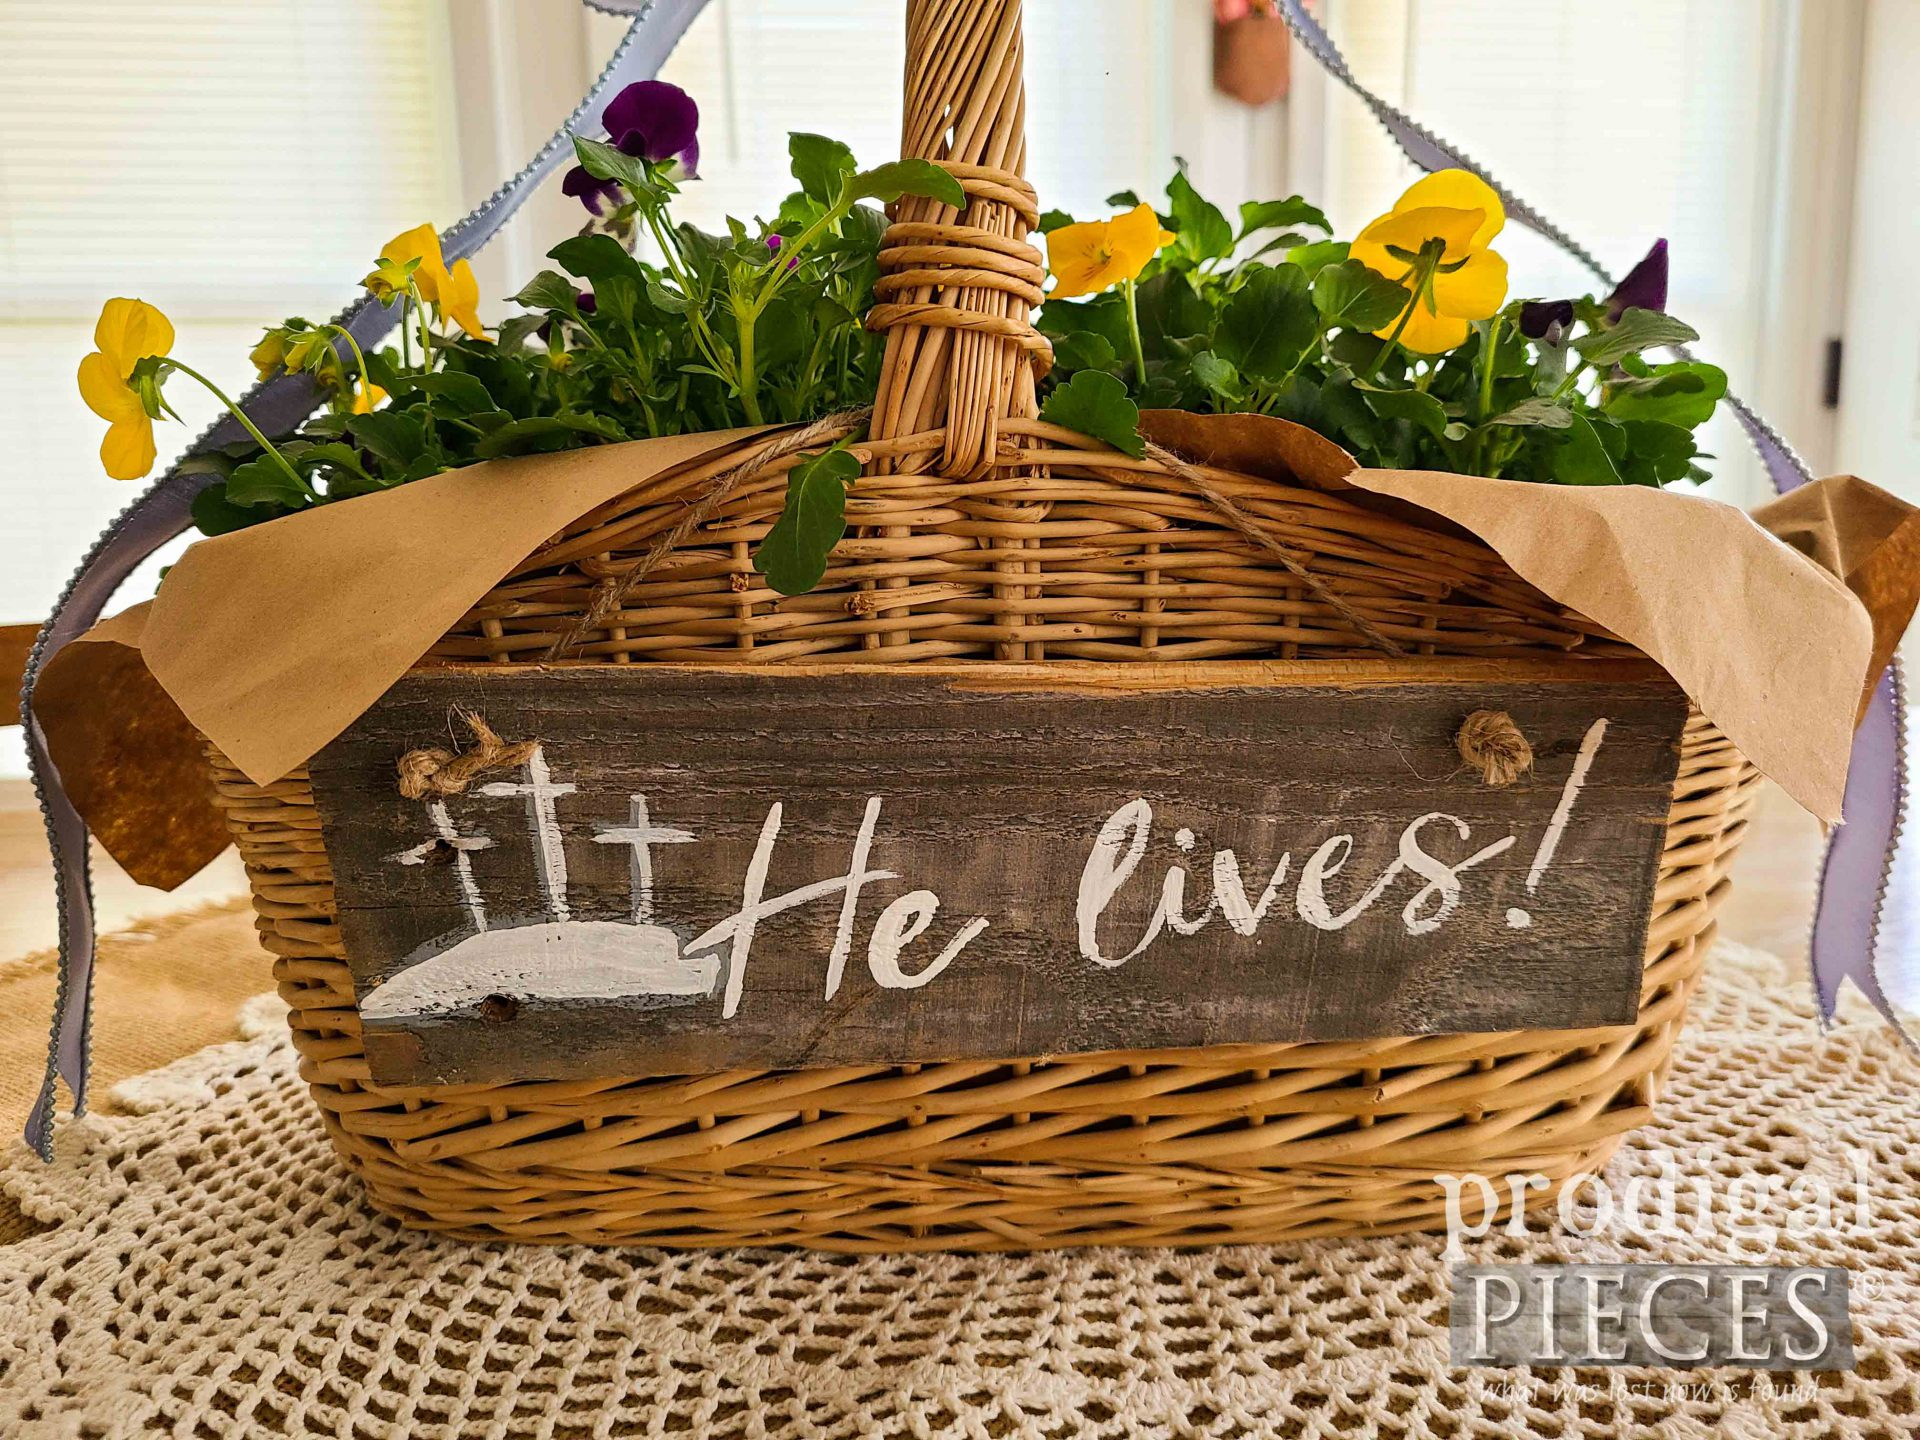 He Lives Easter Basket with DIY Tutorial by Larissa of Prodigal Pieces | prodigalpieces.com #prodigalpieces #easter #diy #flowers #spring #home #homedecor